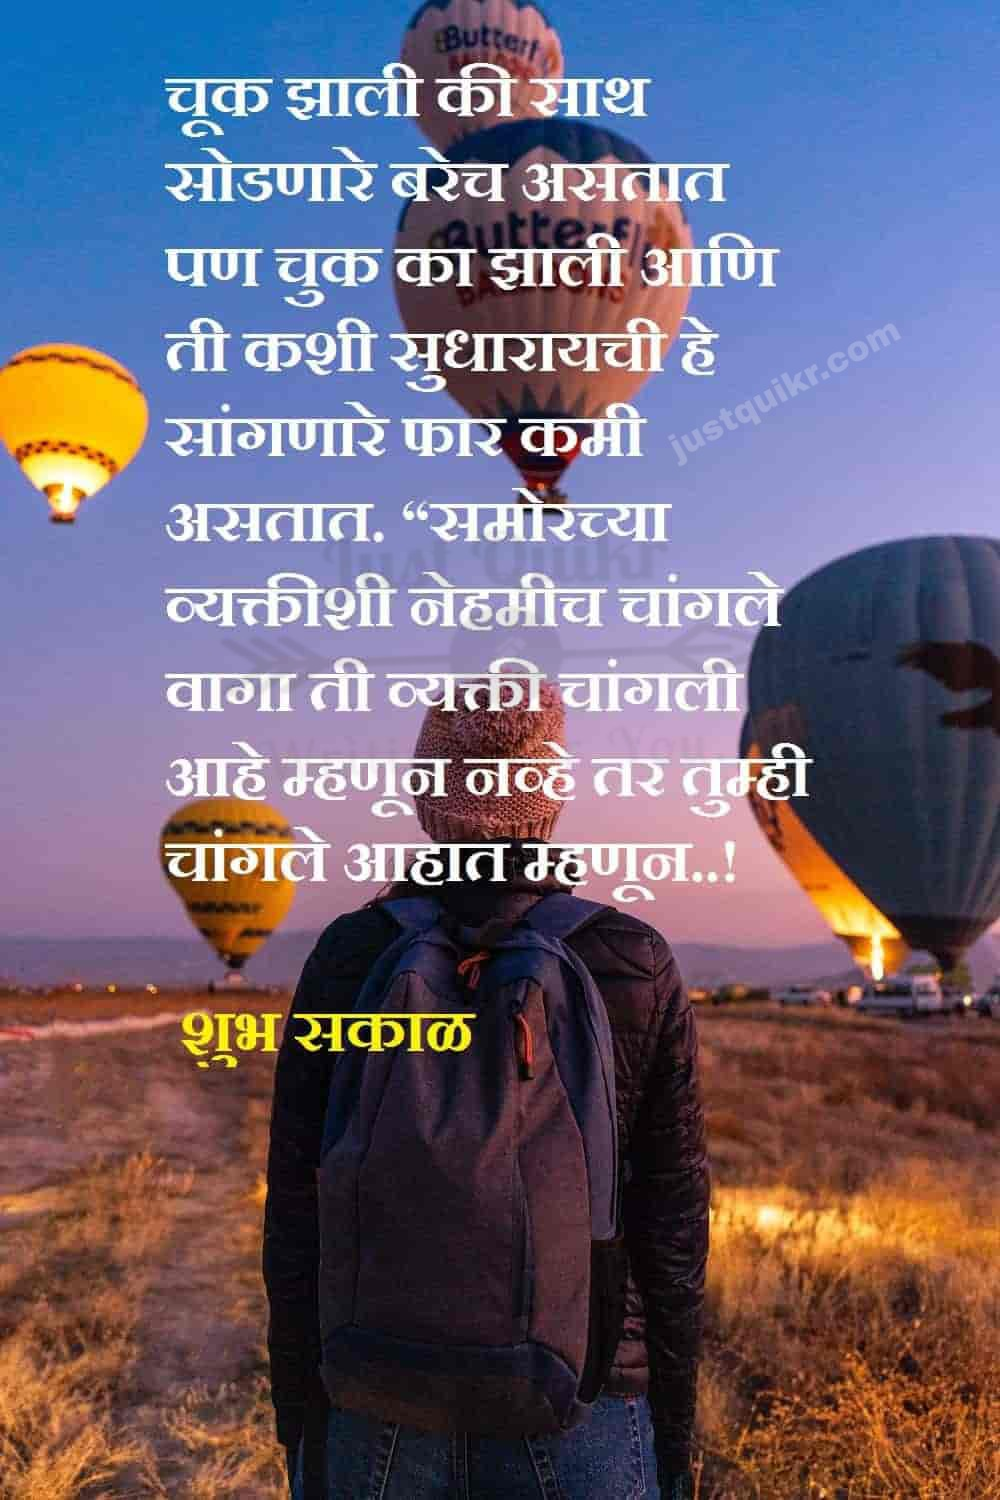 Good Morning Quotes in Marathi Pics Images Photo Wallpaper Download